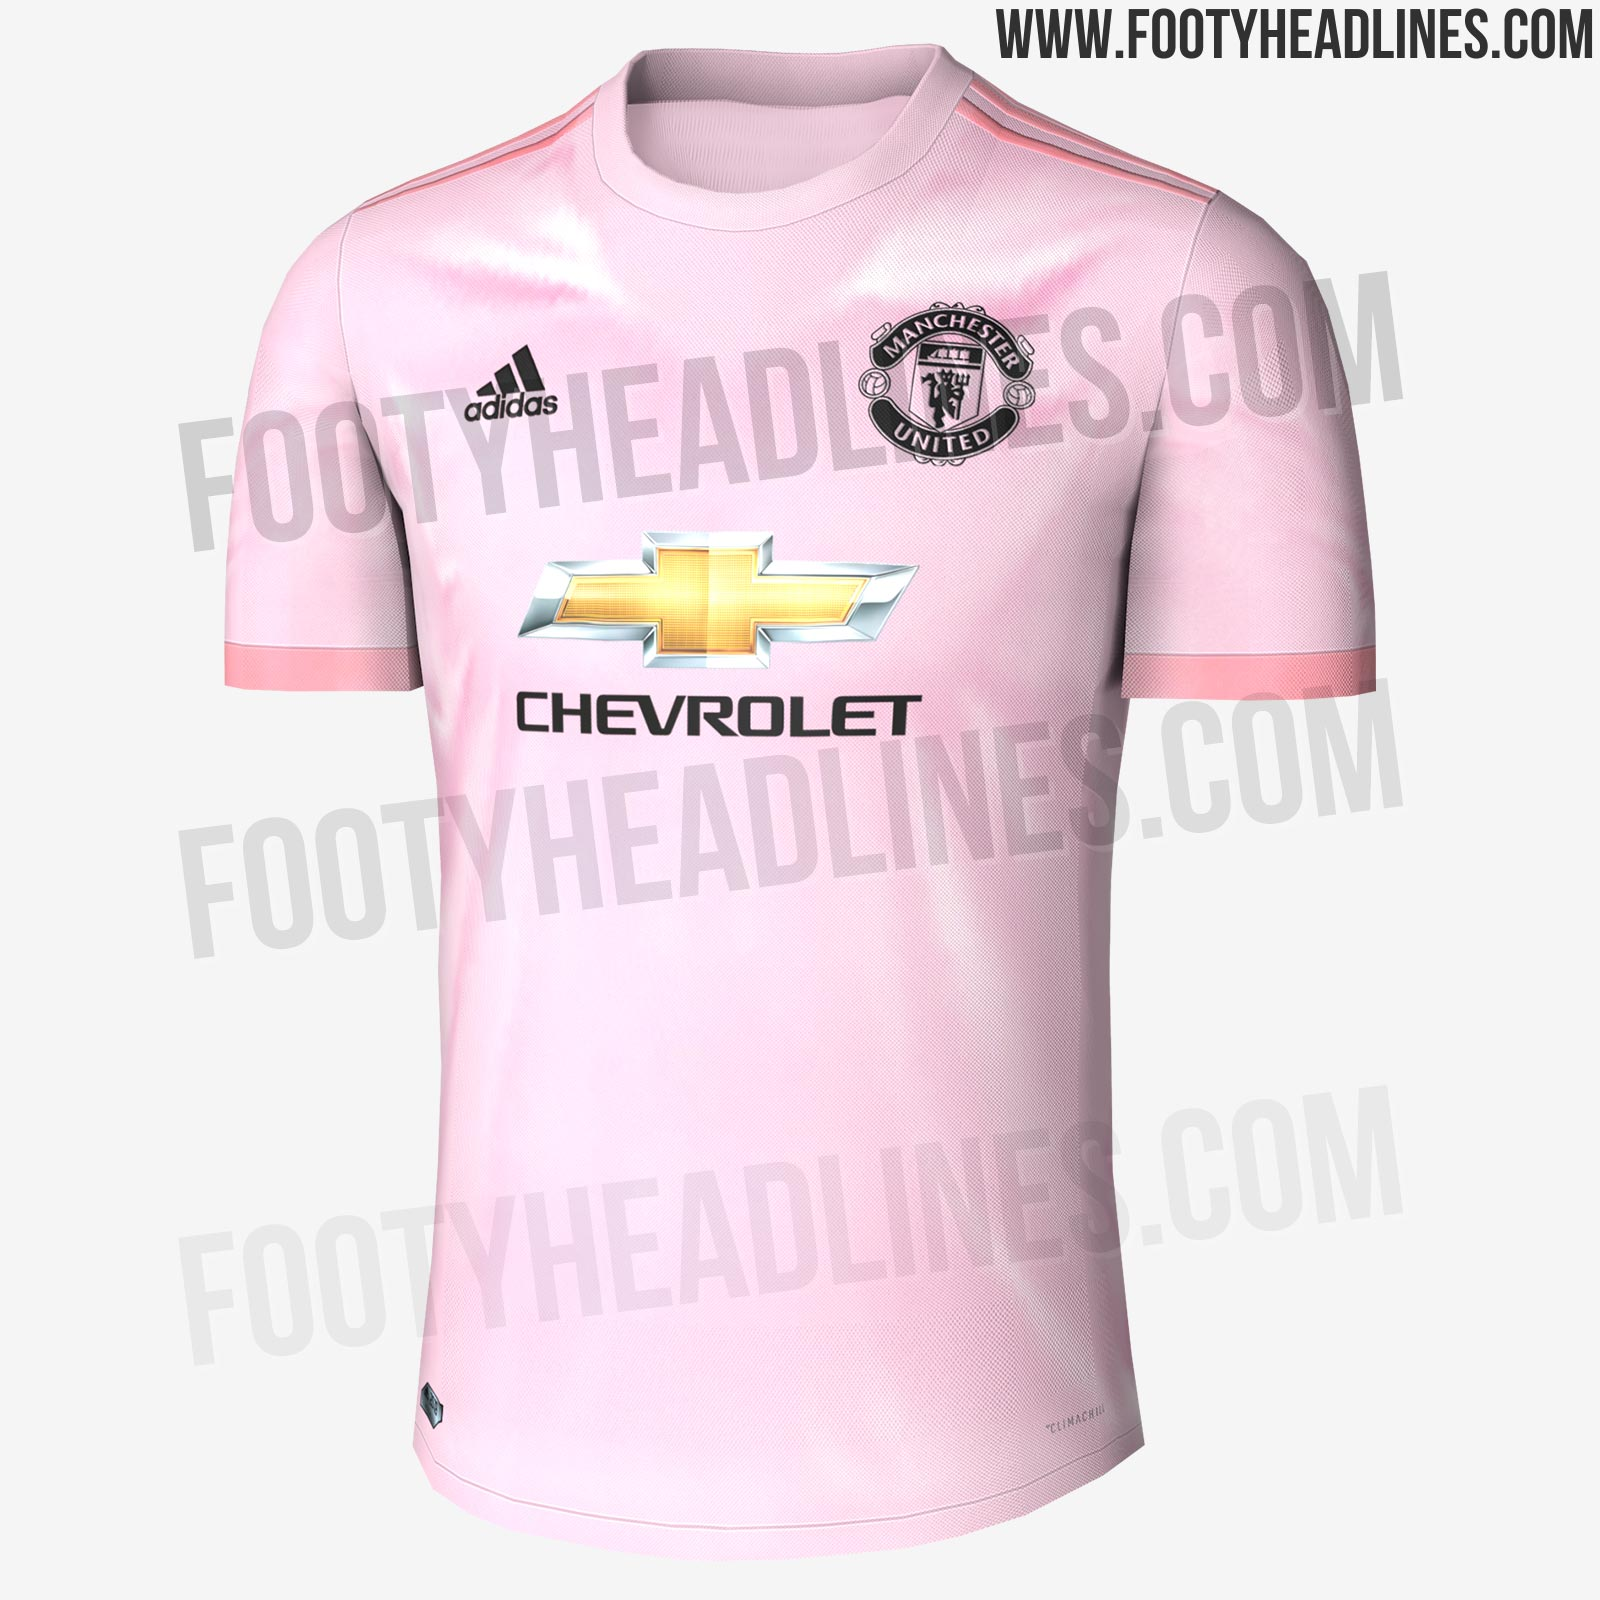 801be7edb5 Site vaza suposta camisa rosa do Manchester United para temporada 2017 2018